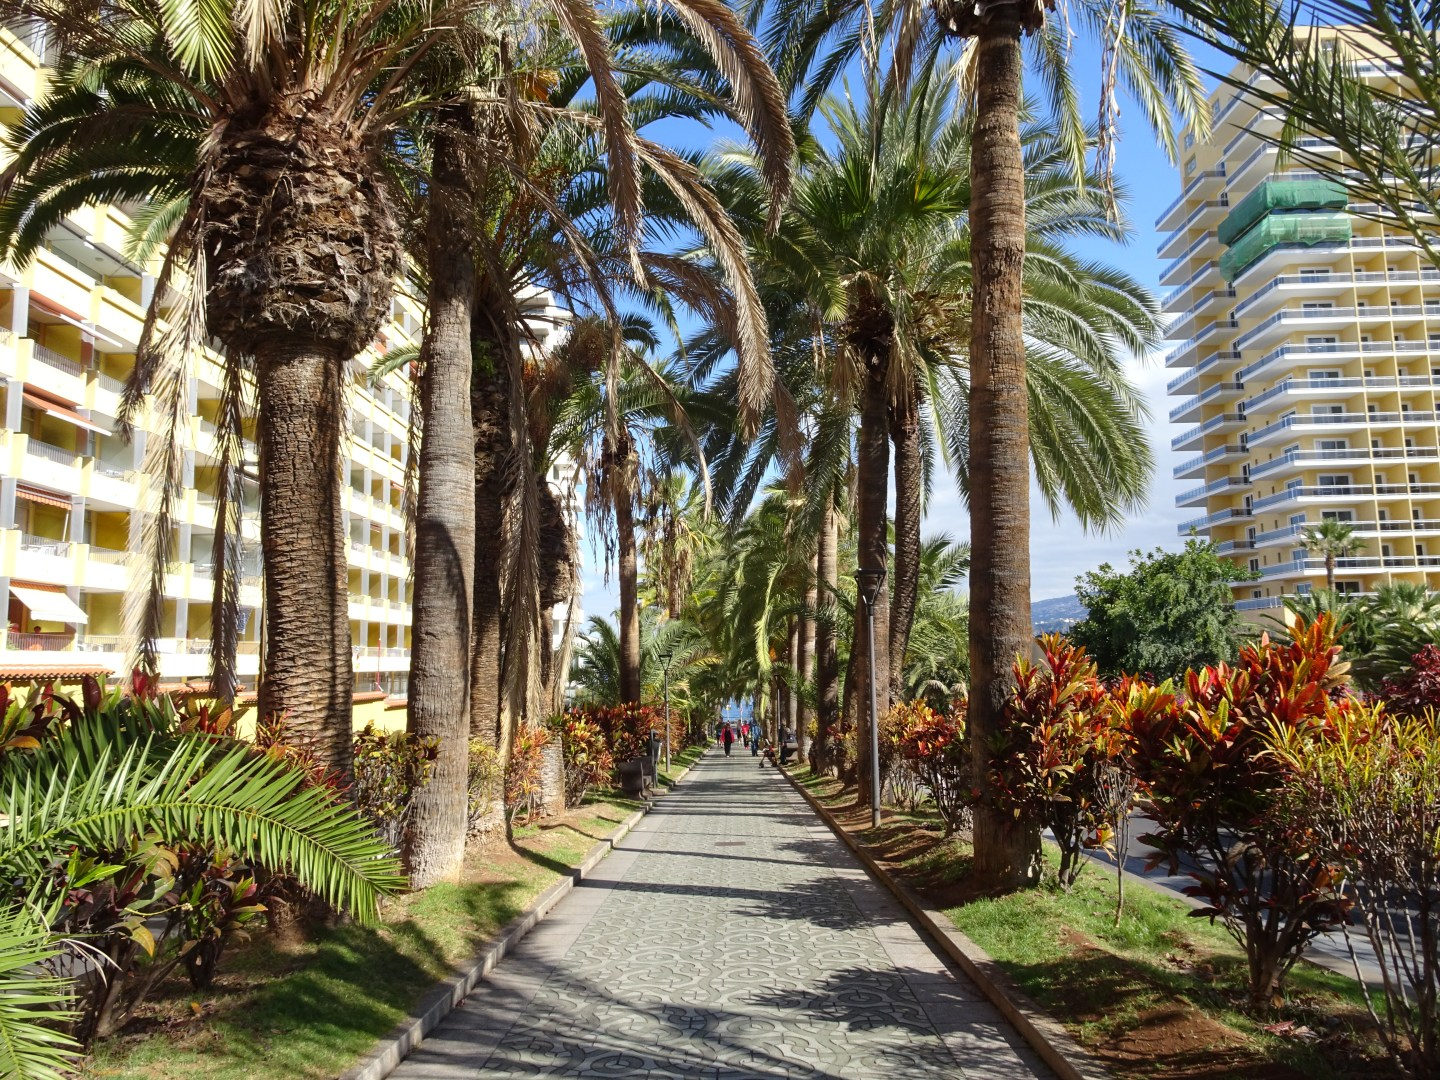 Holiday in North Tenerife